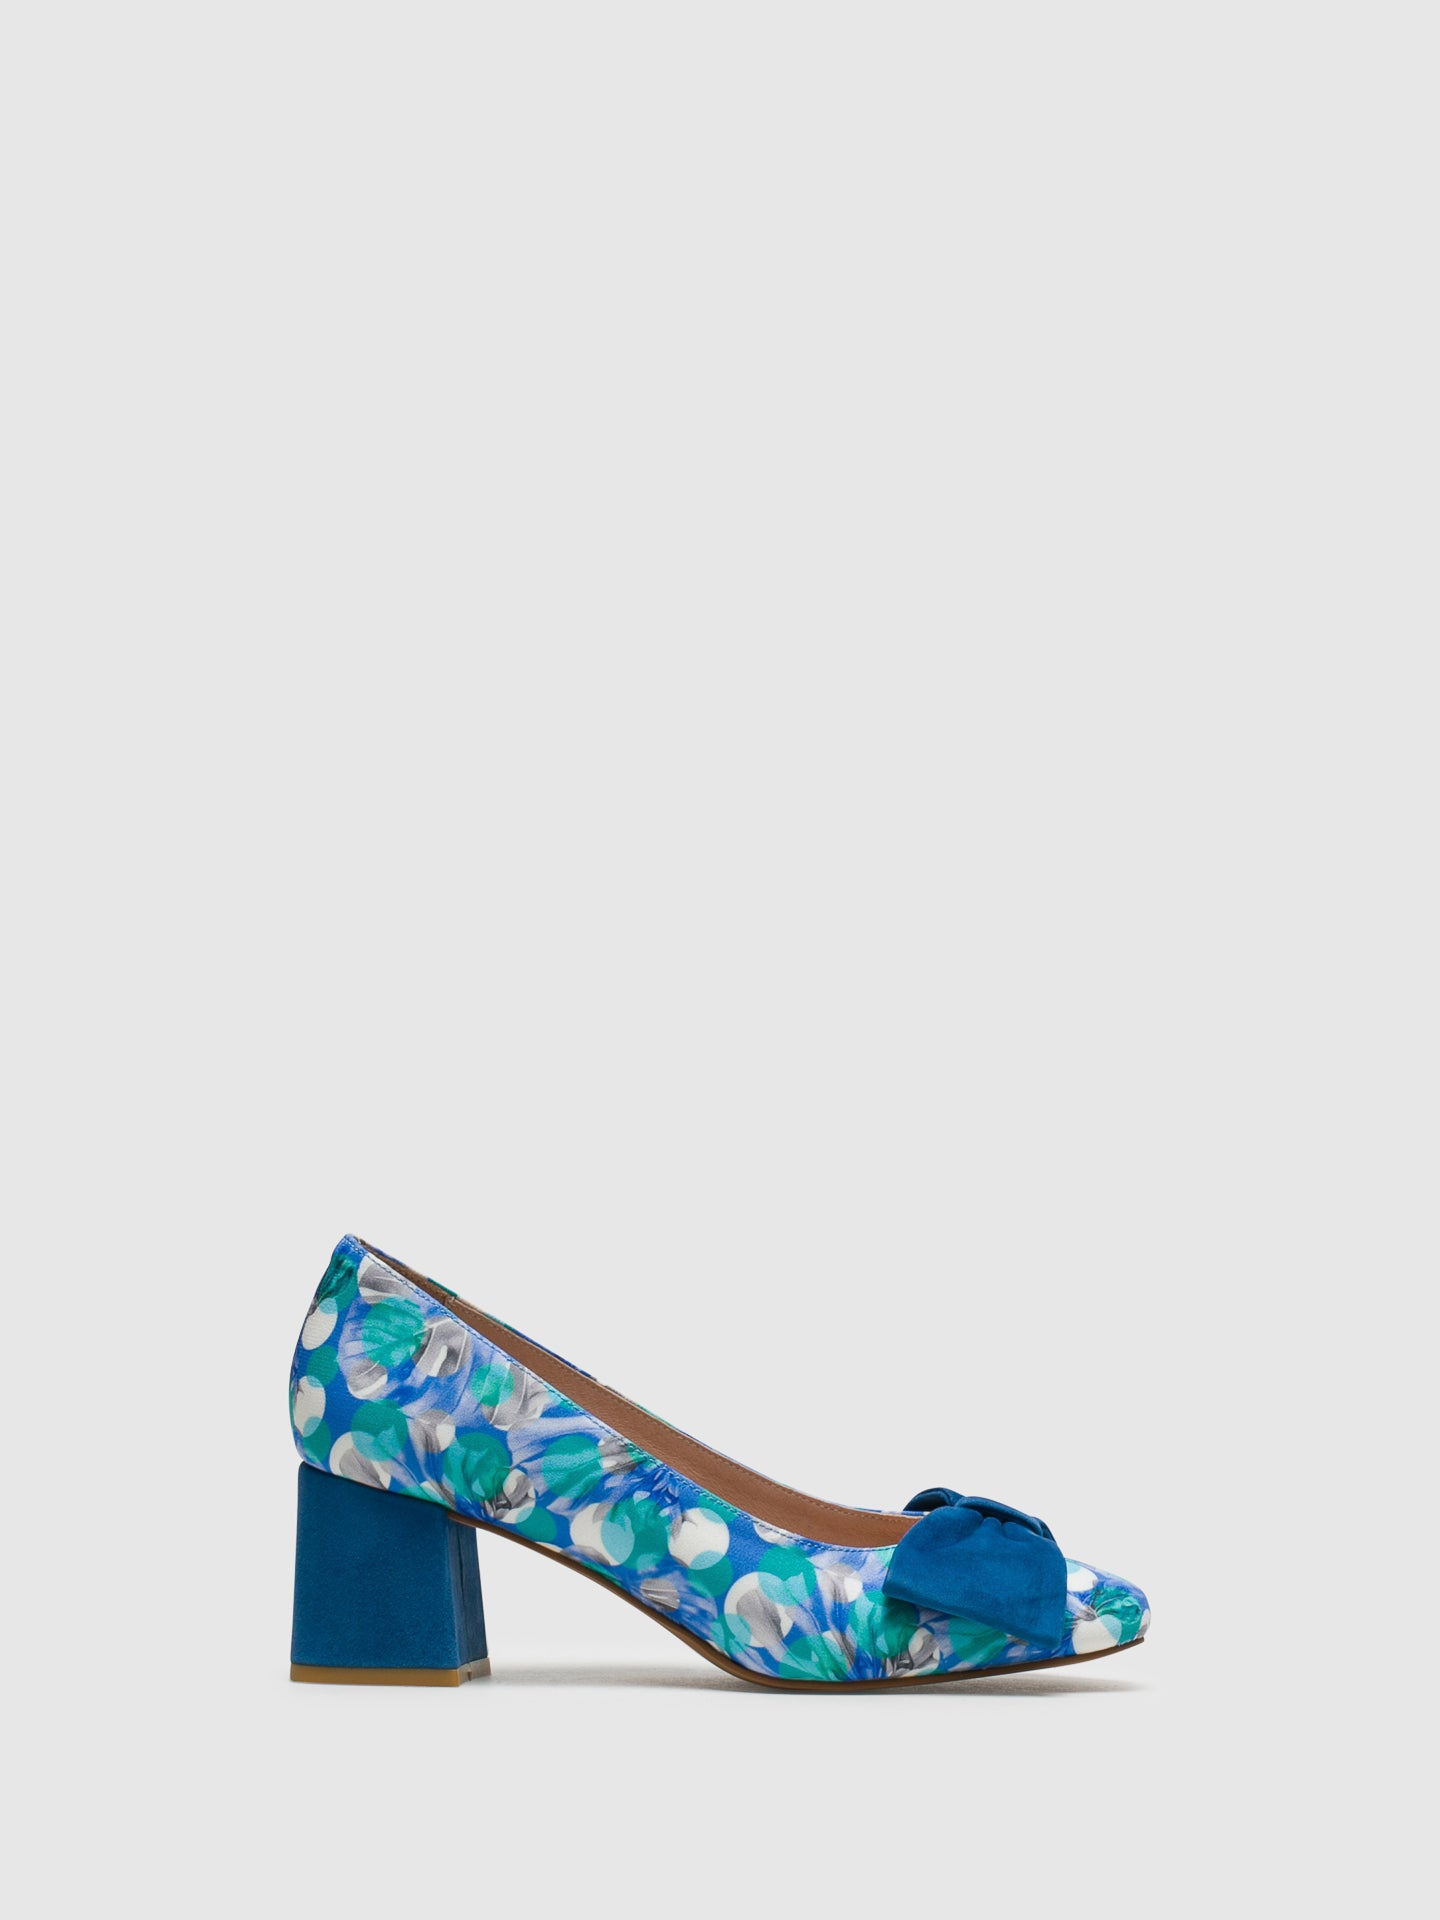 Foreva Blue Round Toe Shoes